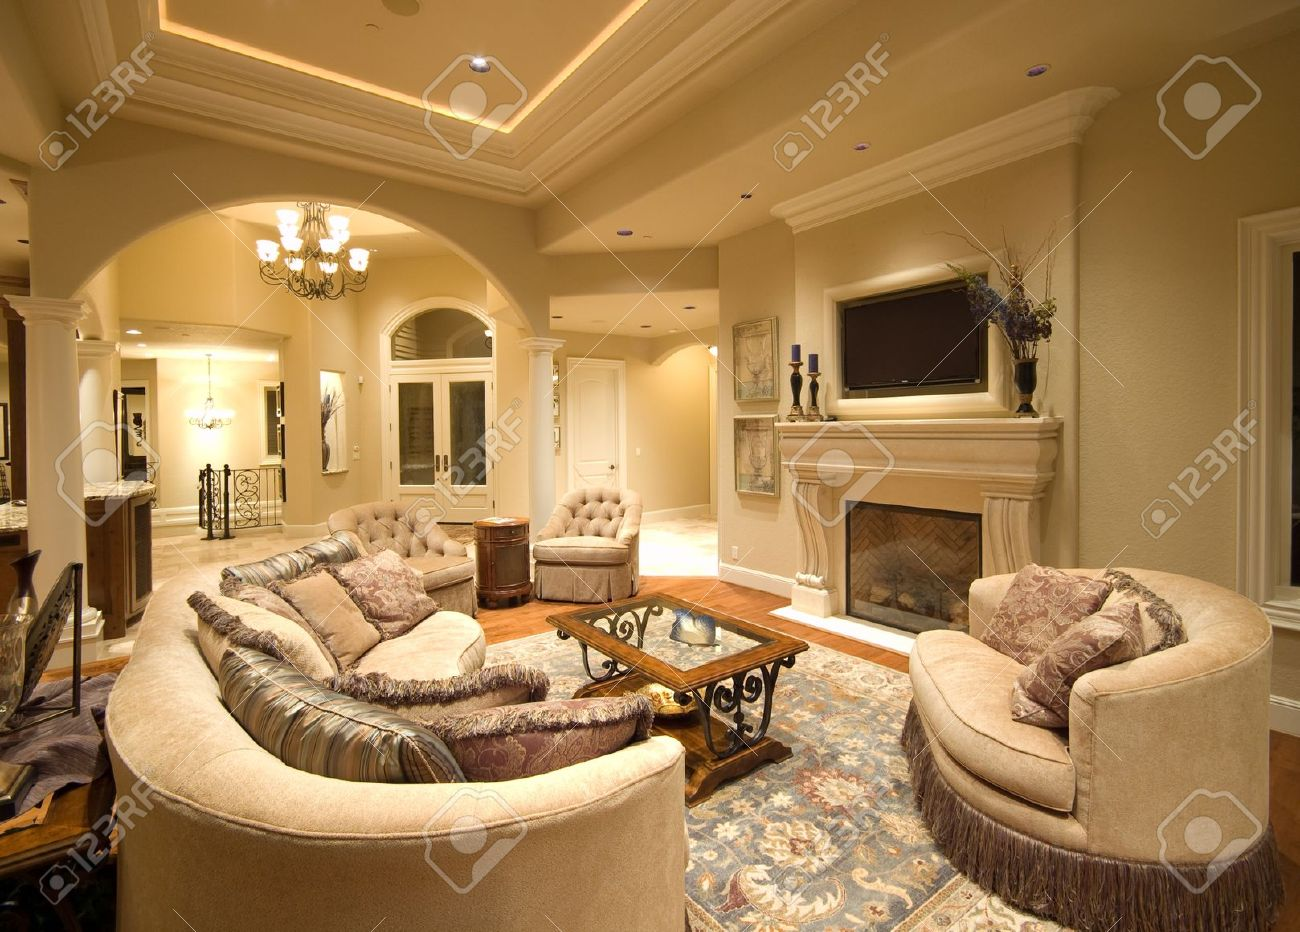 Beautiful Living Room Interior In Luxury Home With Fireplace And TV Stock  Photo   50557214